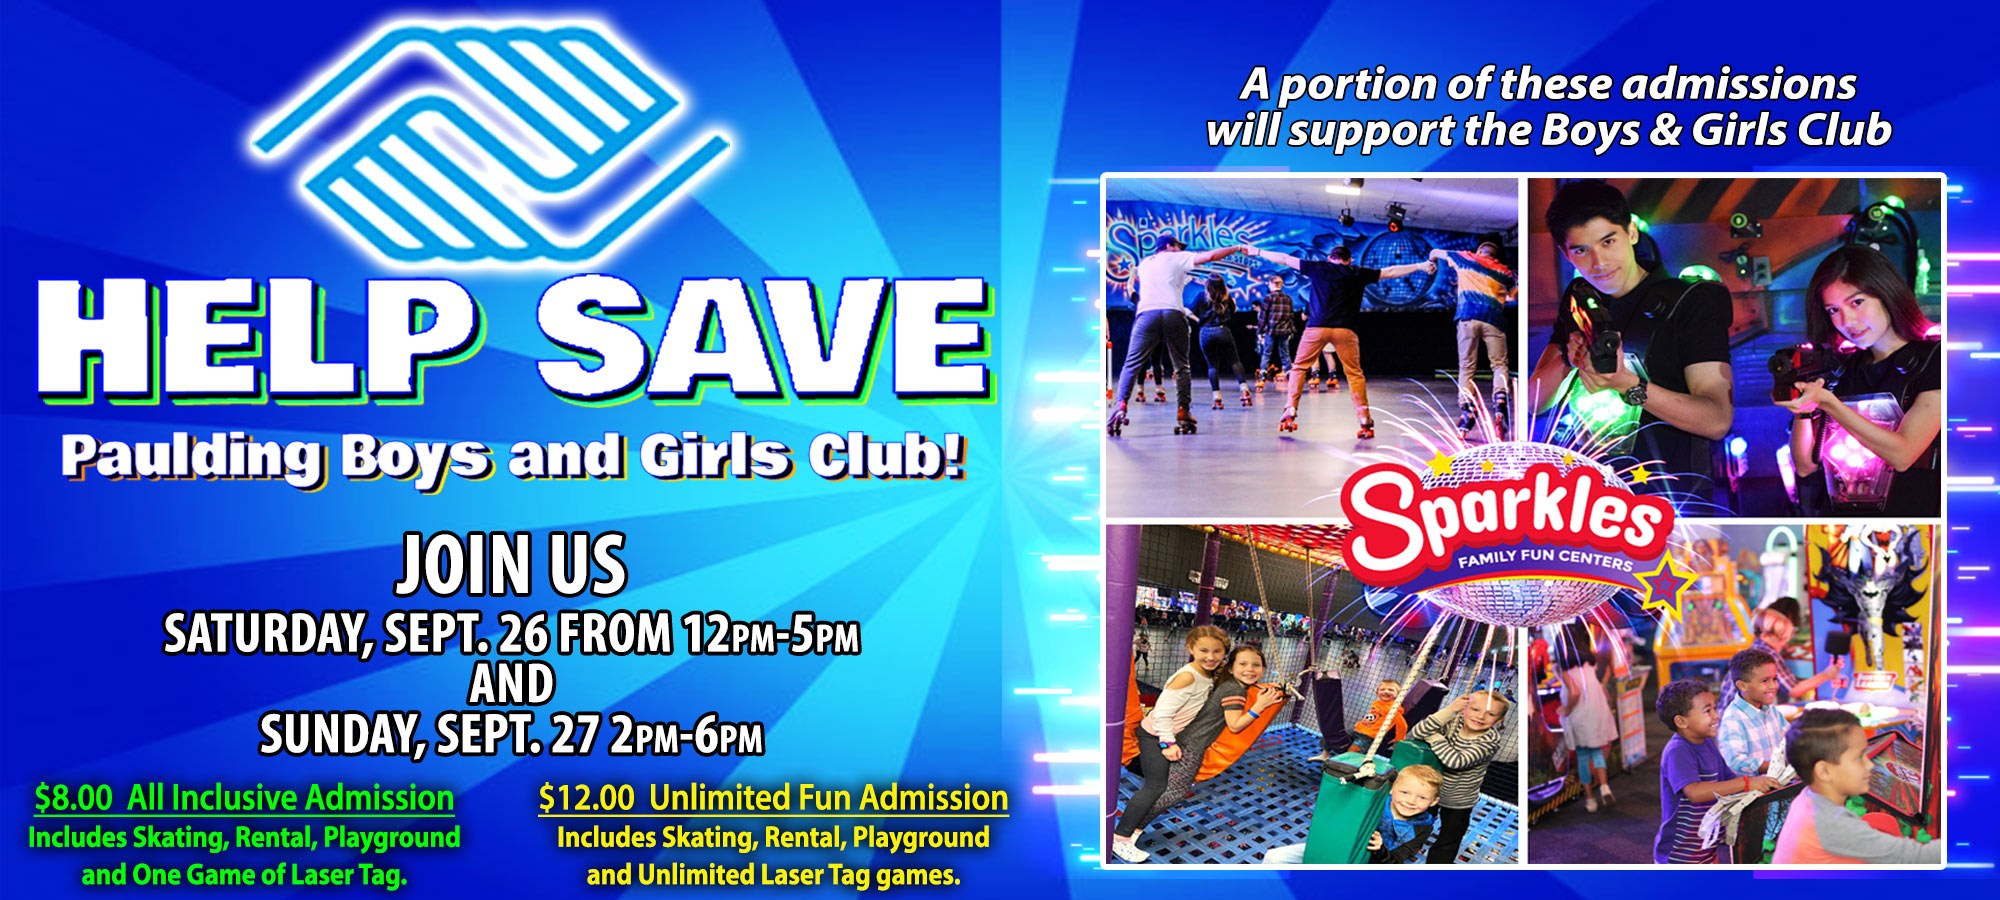 Save-Paulding-County-Boys-and-Girls-Club-2020